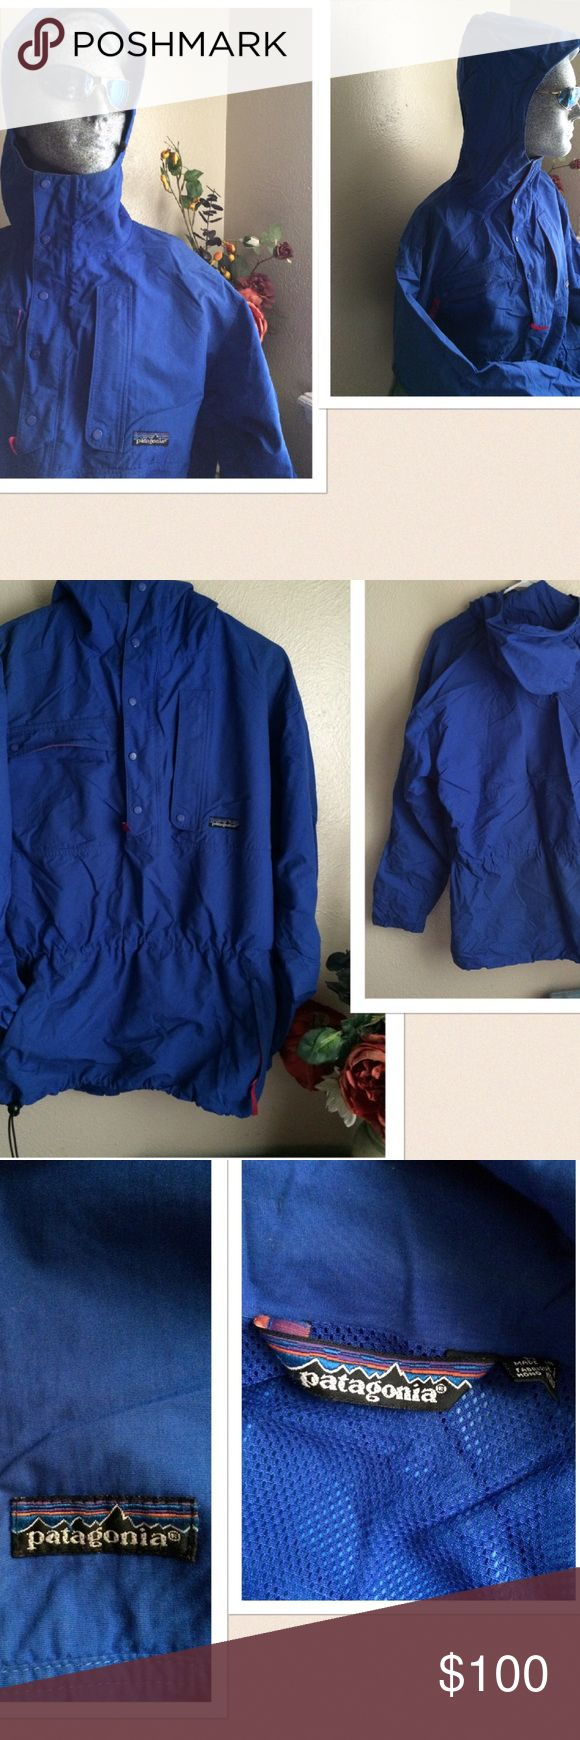 "Vintage Patagonia Parka Hoodie Rain Jacket 💲Final Price 🚫🚫No Offers🚫🚫 Vintage Patagonia Hoodie Rain Jacket. Has tons of features. The hoodie has a wire brim for extra support. zipper and snap button closure. 2 large top snap button & zipper pockets. 2 bottom zipper pockets. Elastic waist with draw cord at the hem. Adjustable sleeve cuffs. Material: 100% nylon. Size: Medium: pit-pit 25.5"" Length: 31"". Preowned with 3 small rip under the arm and inside has little wear on the elastic…"